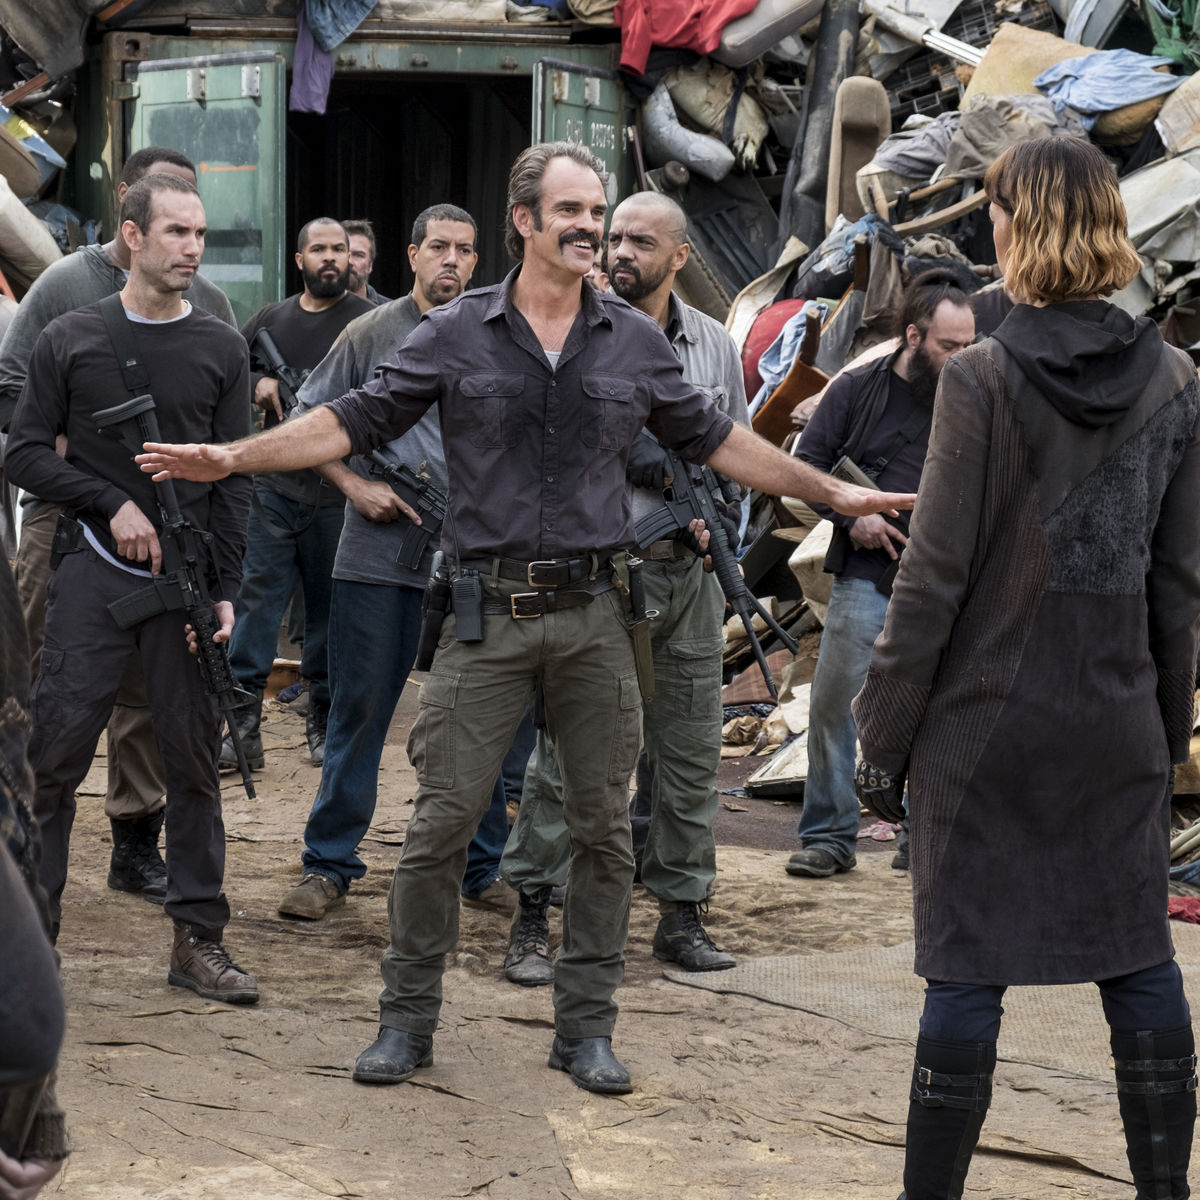 The Walking Dead episode 810 - Simon confronts Jadis and the heapsters